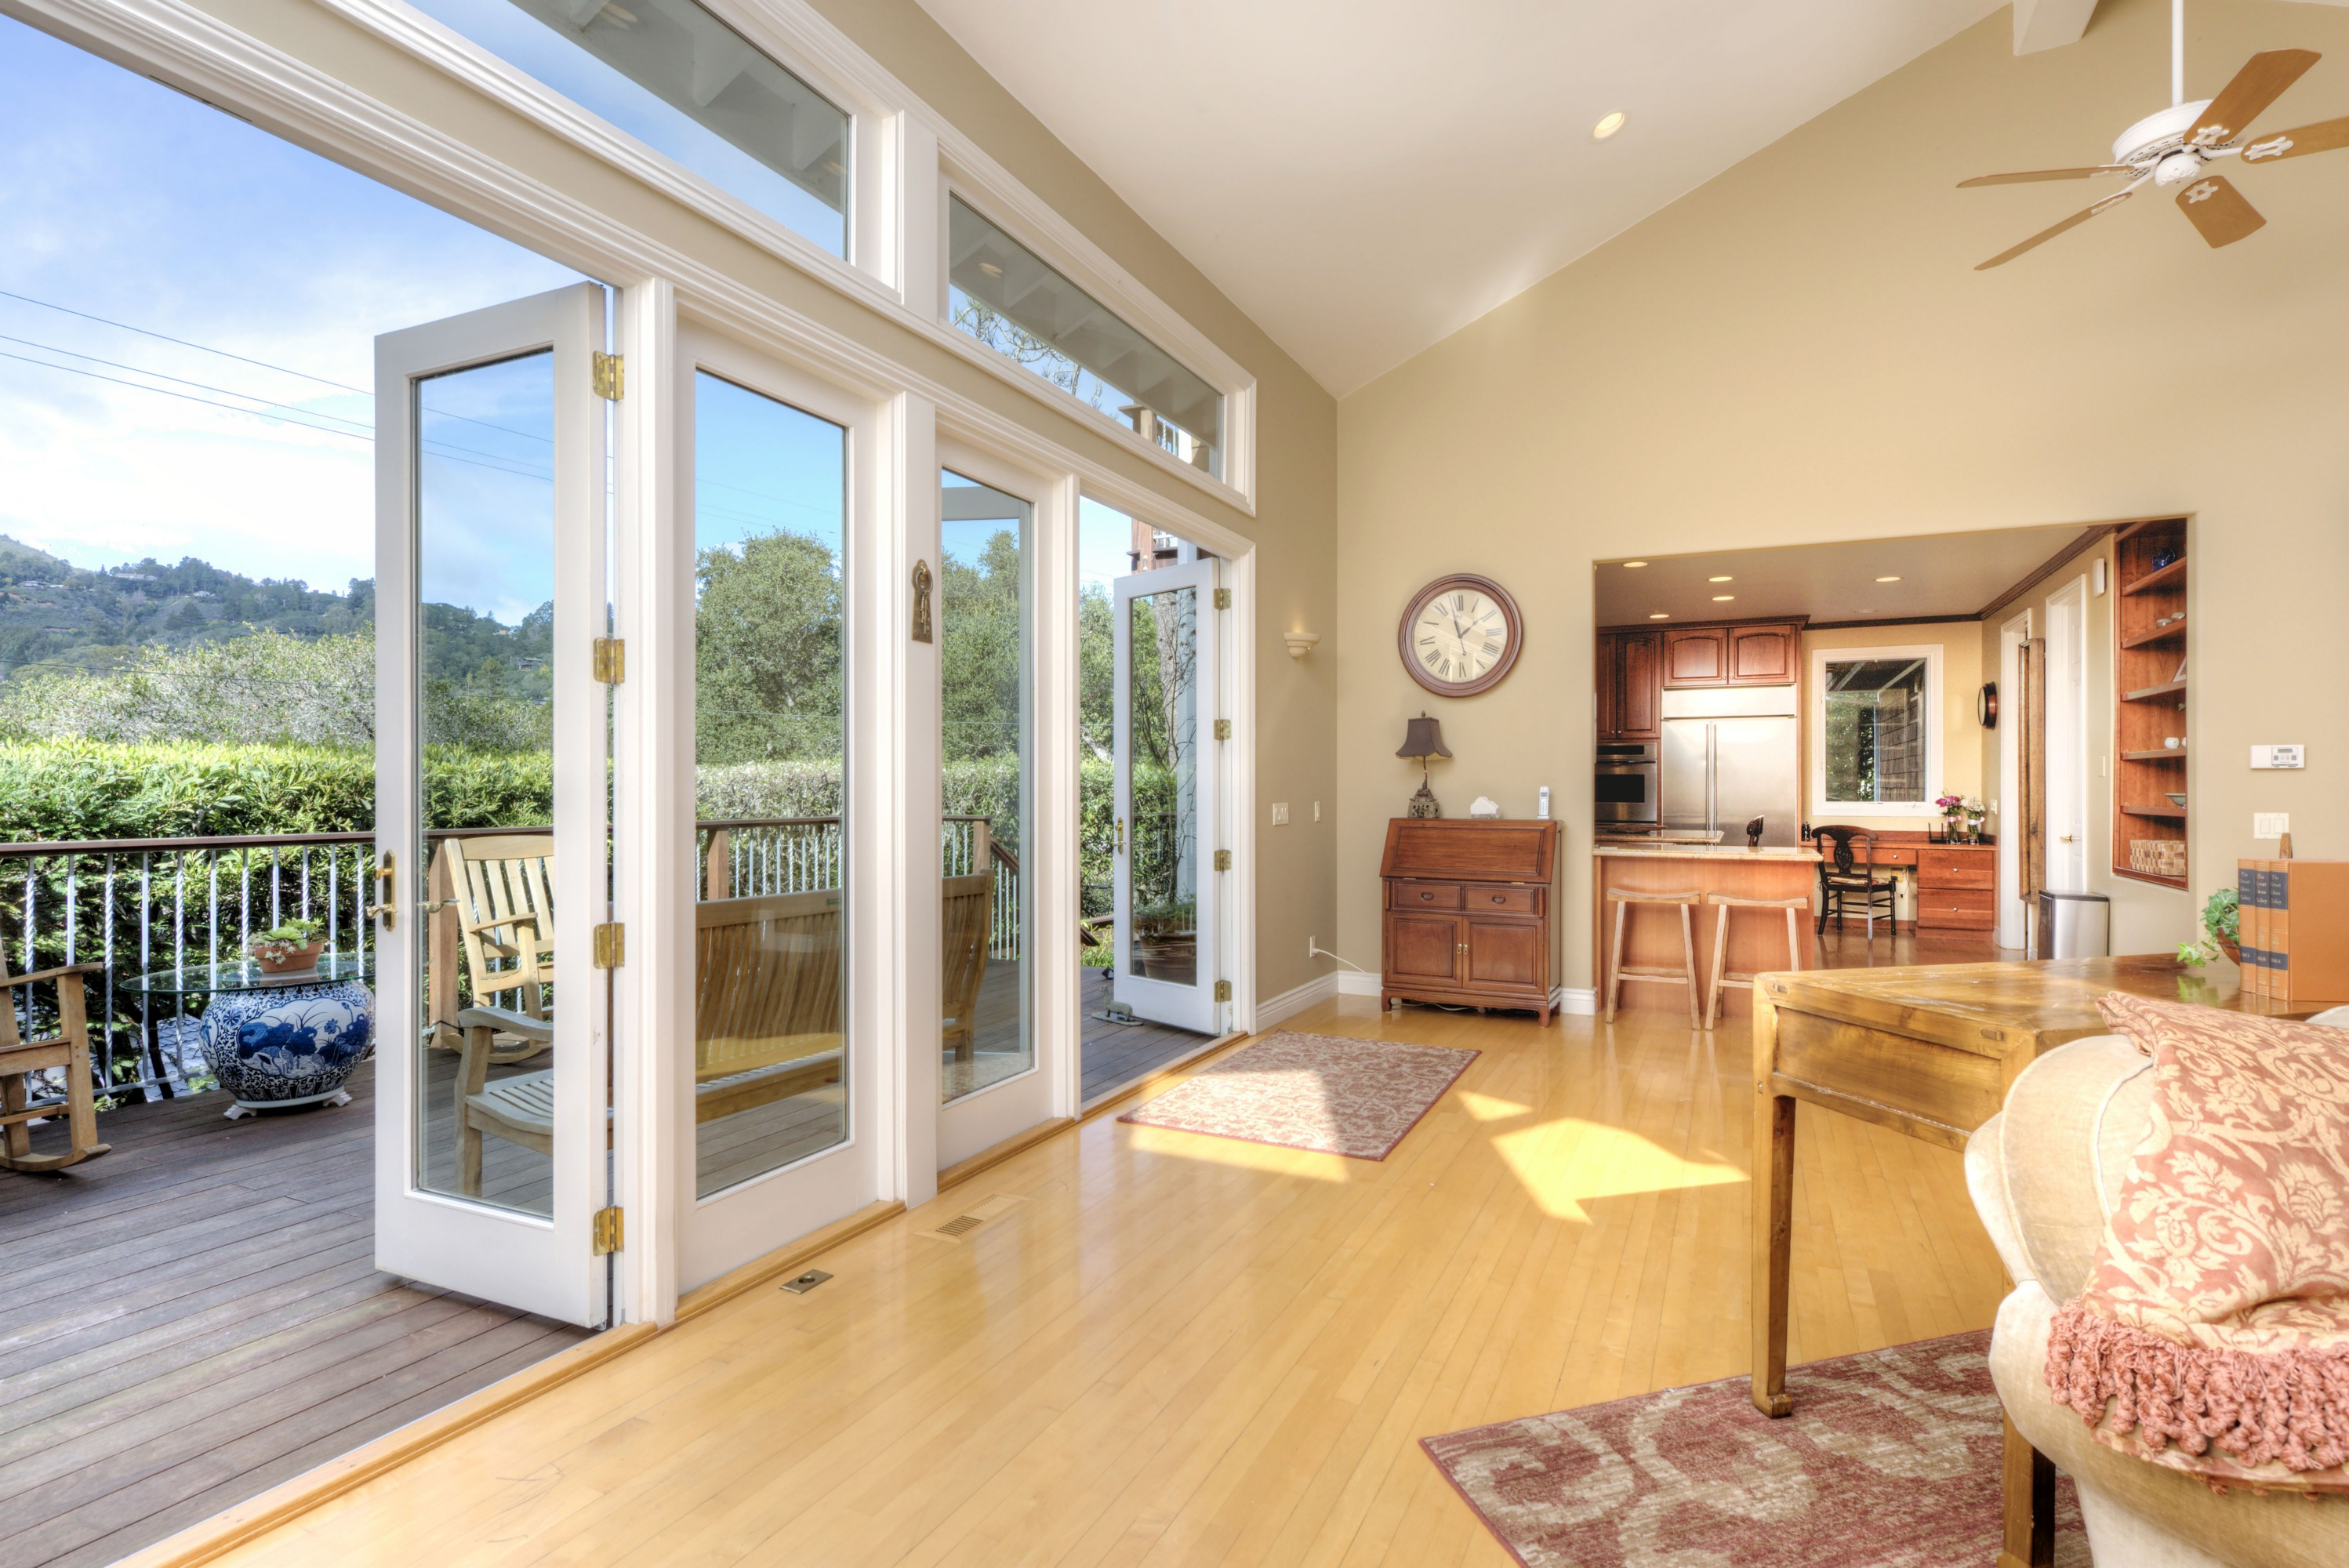 Single Family Home for Sale at Magic in Mill Valley 136 Marion Avenue Mill Valley, California 94941 United States